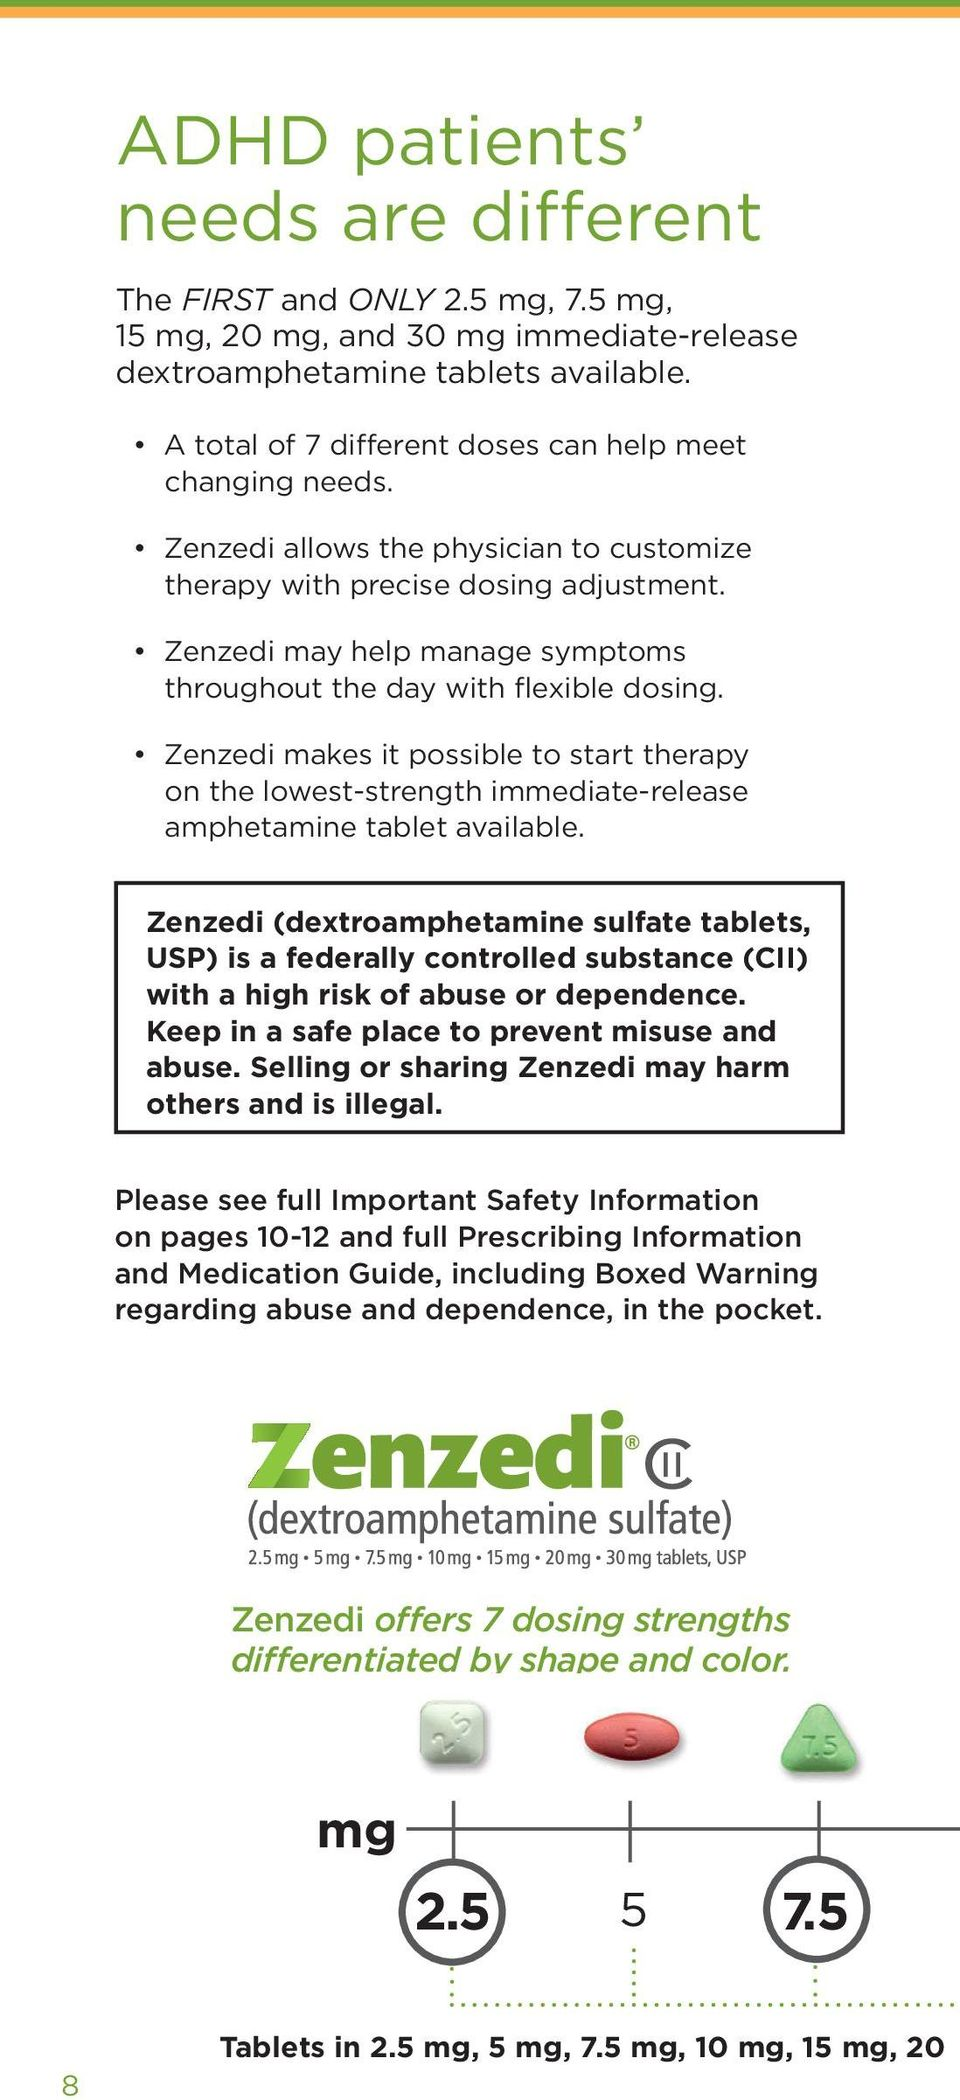 Zenzedi may help manage symptoms throughout the day with flexible dosing. Zenzedi makes it possible to start therapy on the lowest-strength immediate-release amphetamine tablet available.